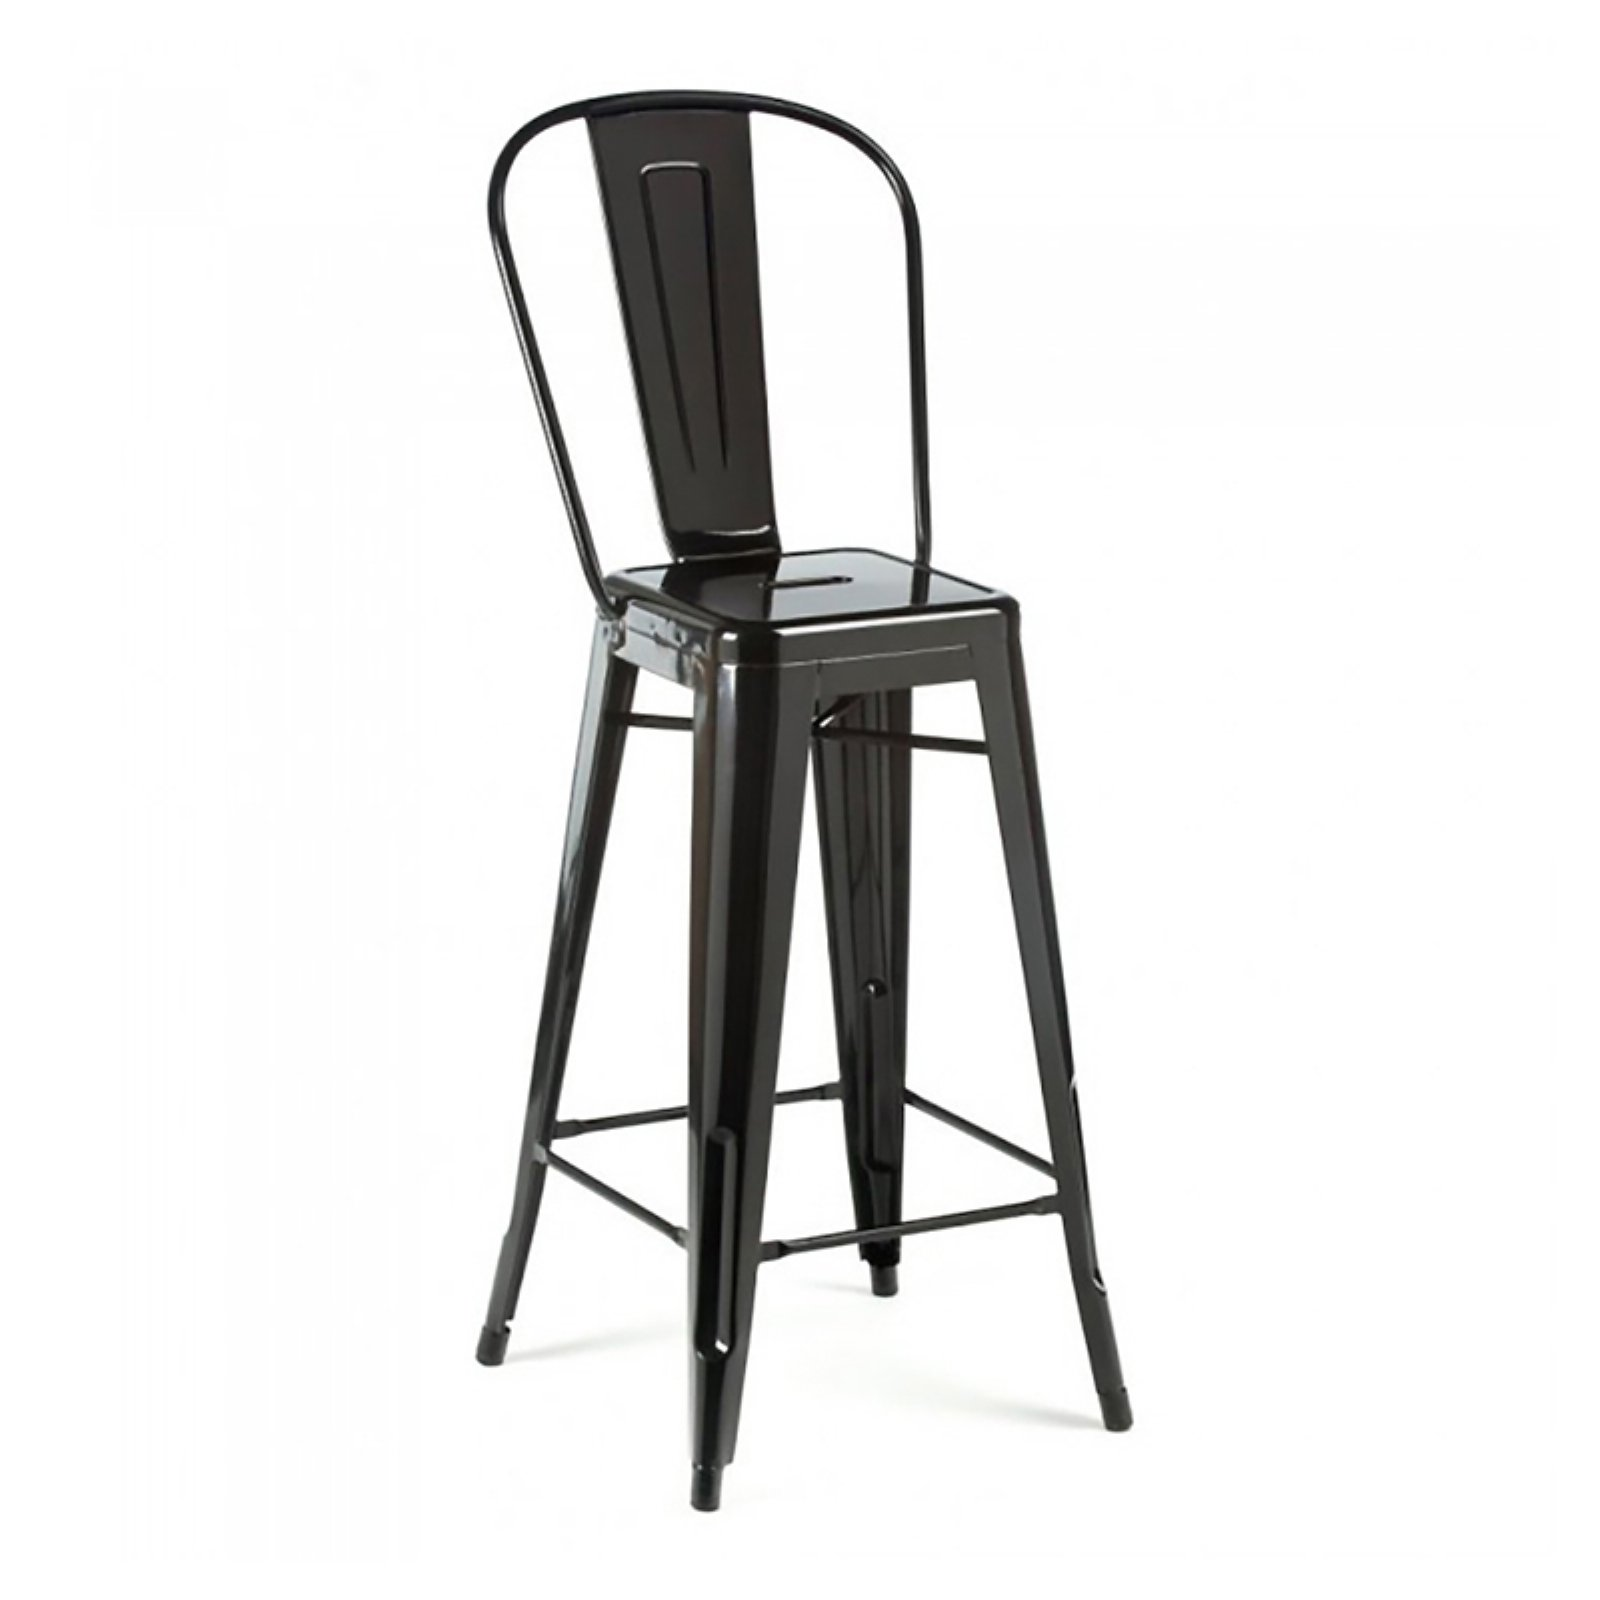 Dreux Glossy Yellow Steel High Back Barstool 30 Inch (Set of 4)